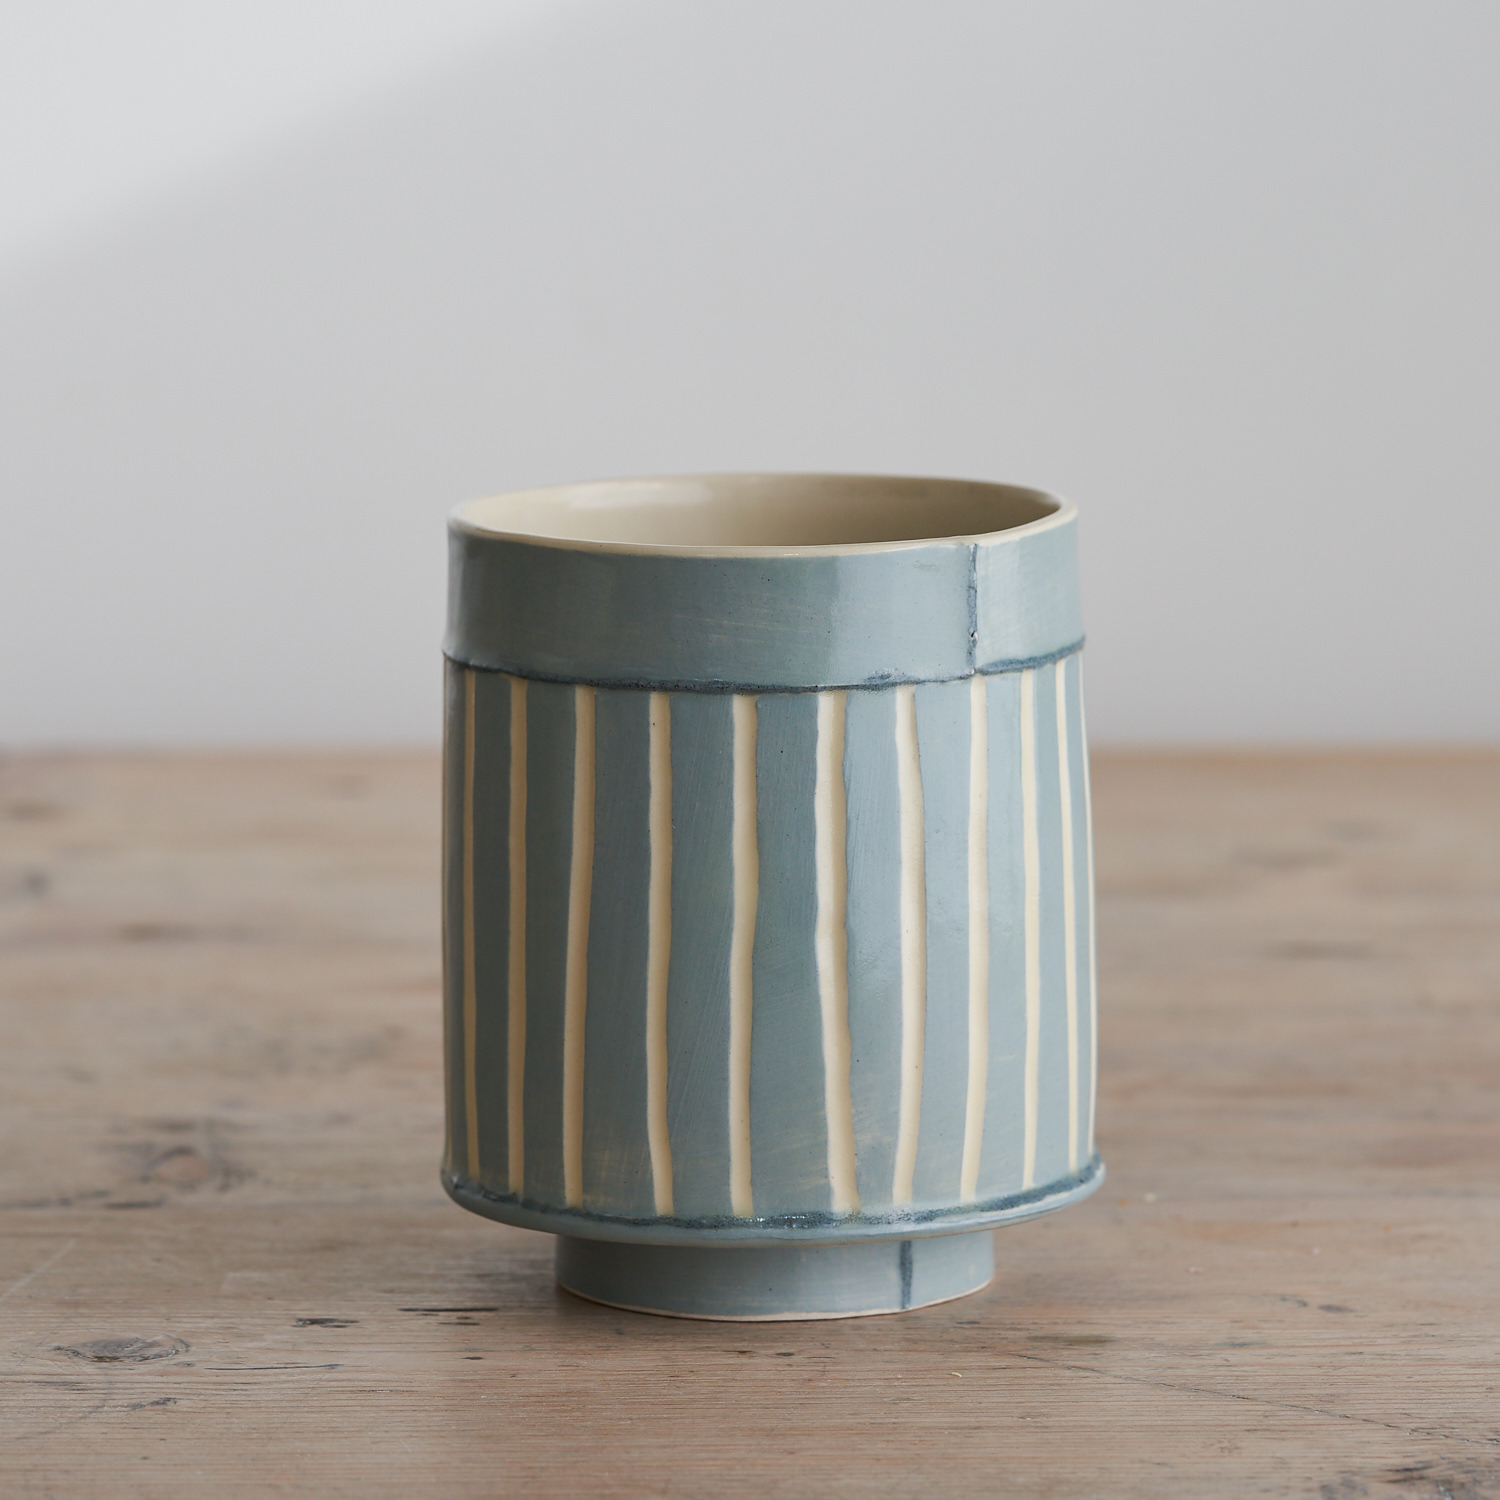 Emily-Kriste Wilcox, small vessel in blue stripe with navy joins, Pattern & Surface